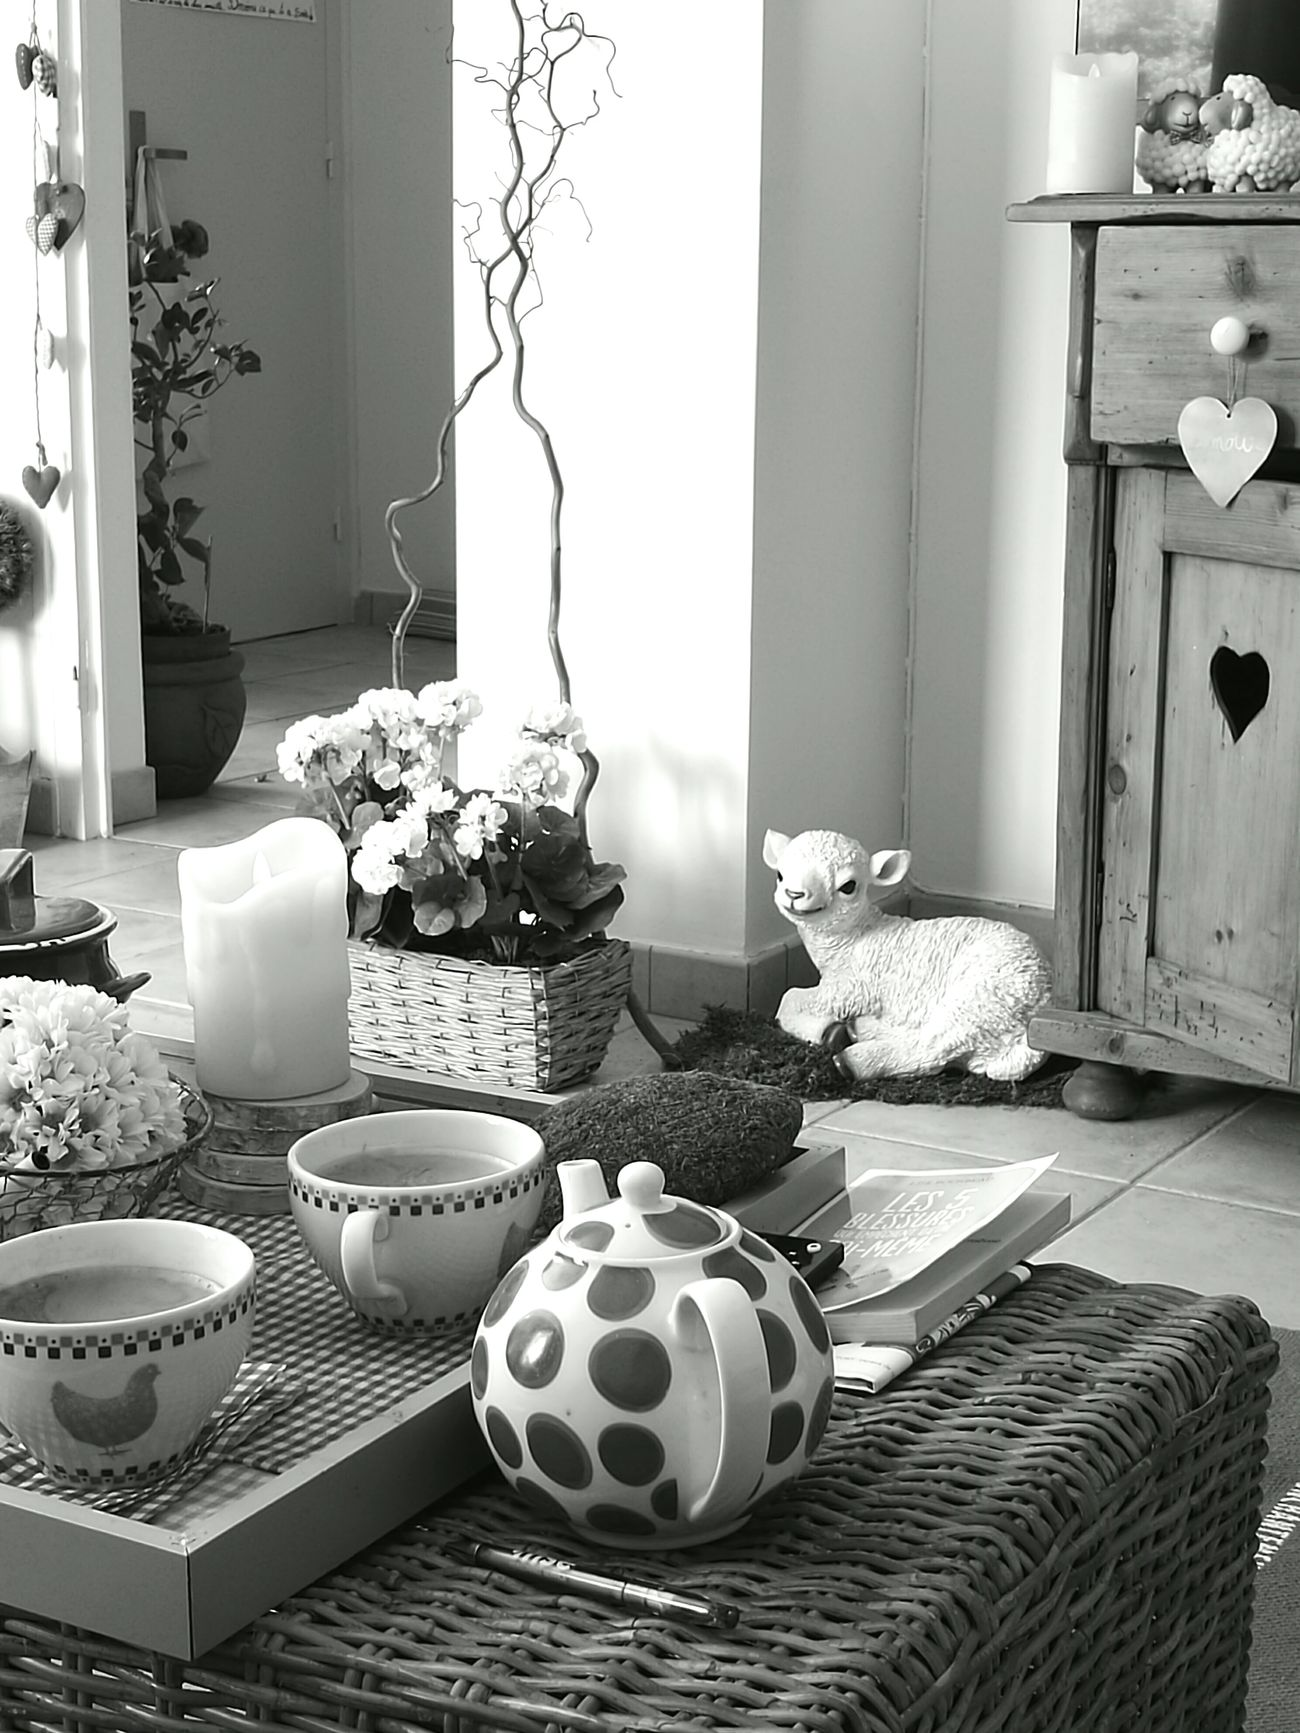 Home Is Where The Art Is Blackandwhite Noir Et Blanc Morning Matin Coffee Time Teatime Home Sweet Home Home